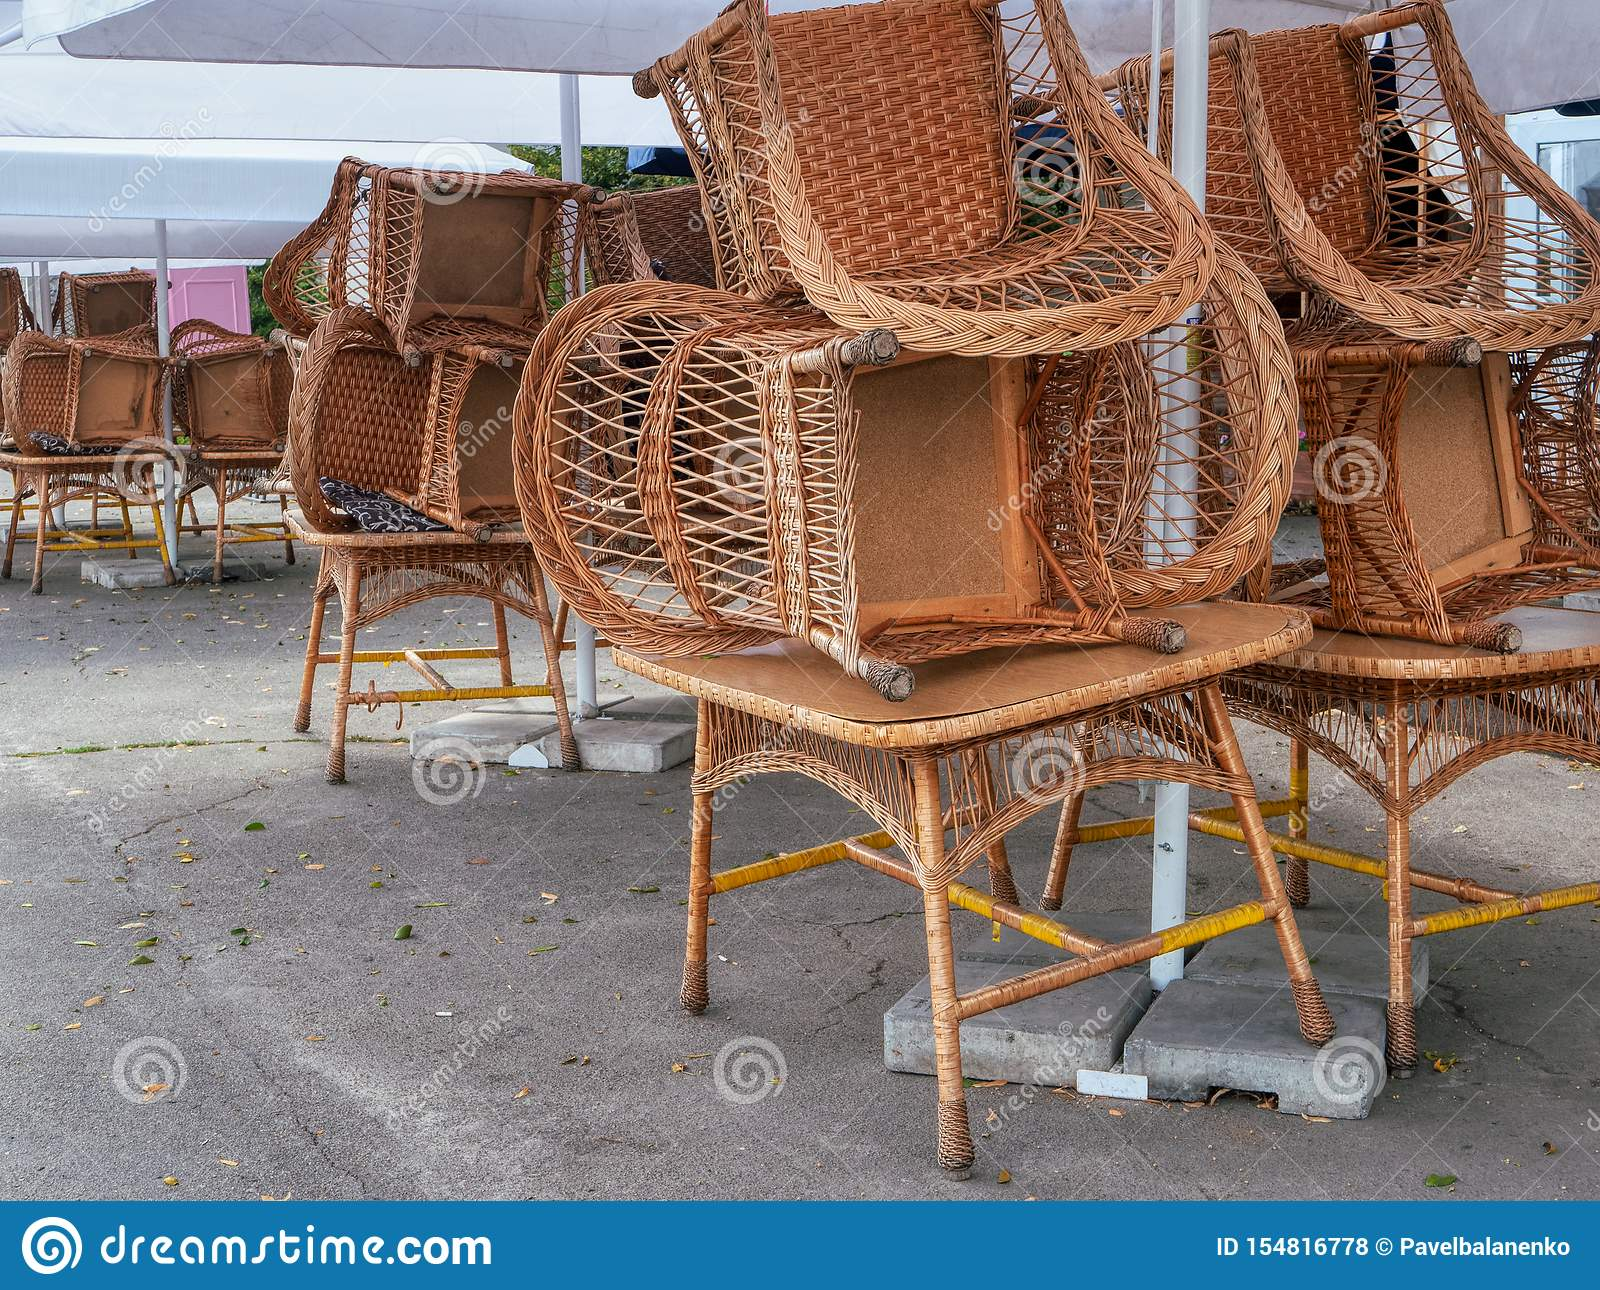 Closed cafe restaurant with rattan whicker chairs, cane-chairs stacked upon tables outdoor